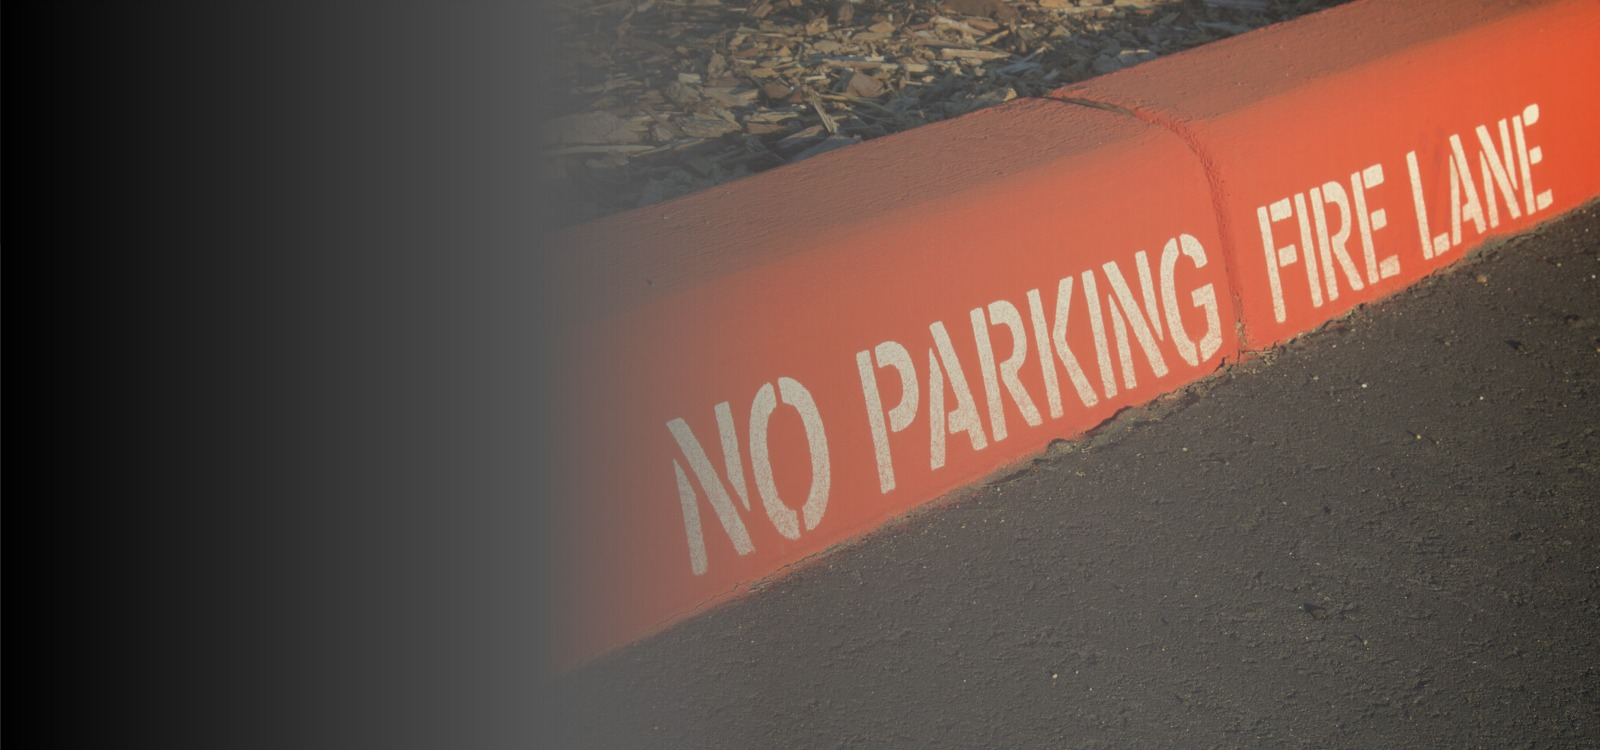 <div class='slider_caption'>		 <h1>Unable to control the fire lane & ​restricted parking areas in your communities​?​</h1>			<a class='slider-readmore' href='#'>Read More</a> 			  </div>